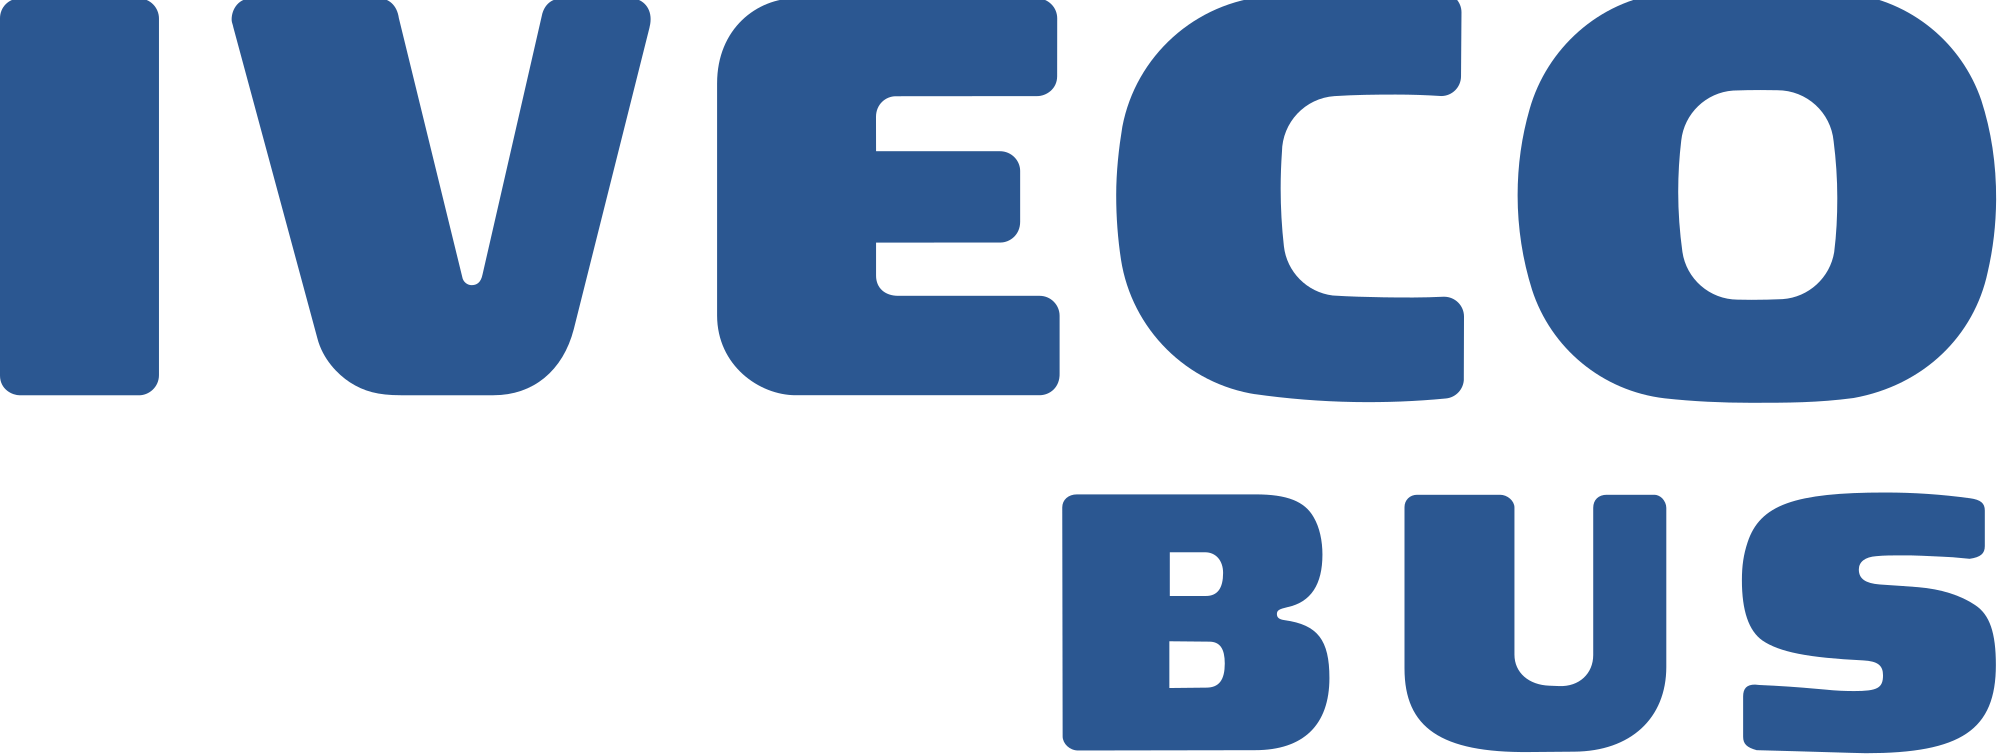 Iveco Logo - File:Iveco Bus logo.svg - Wikimedia Commons